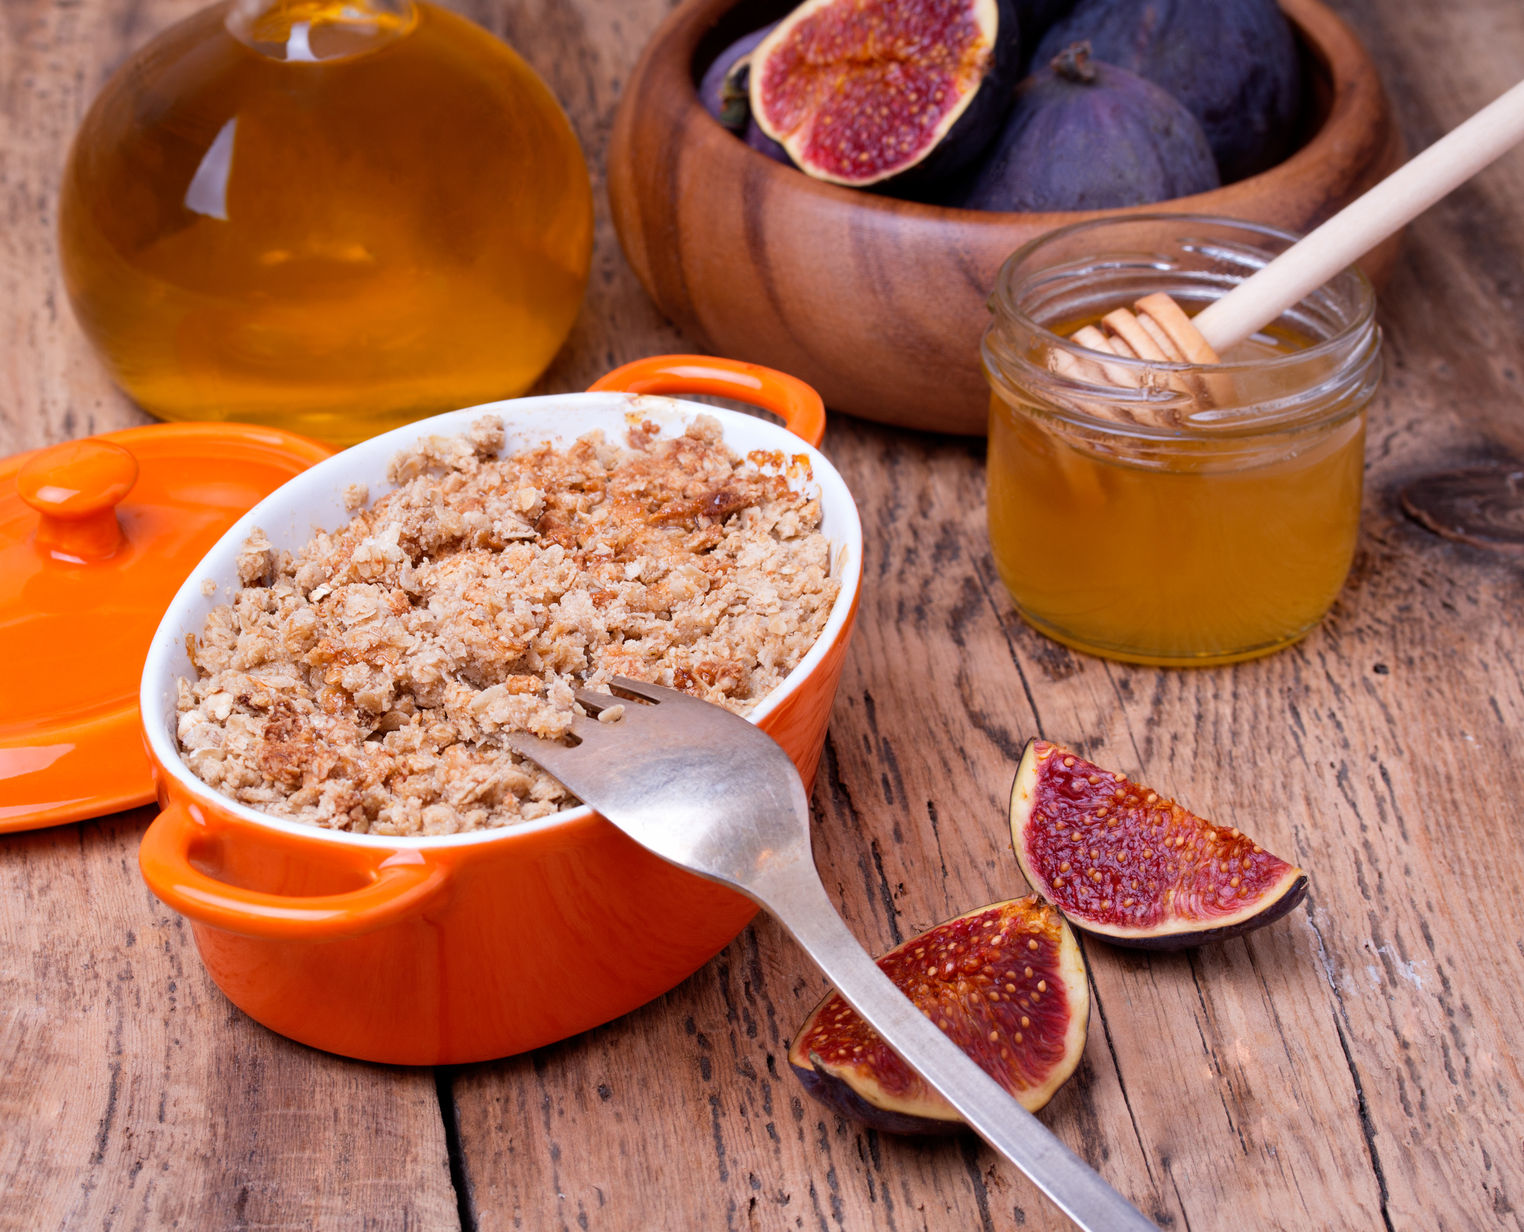 32337930 - apple and figs crumble in orange ceramic dish with honey on wooden background